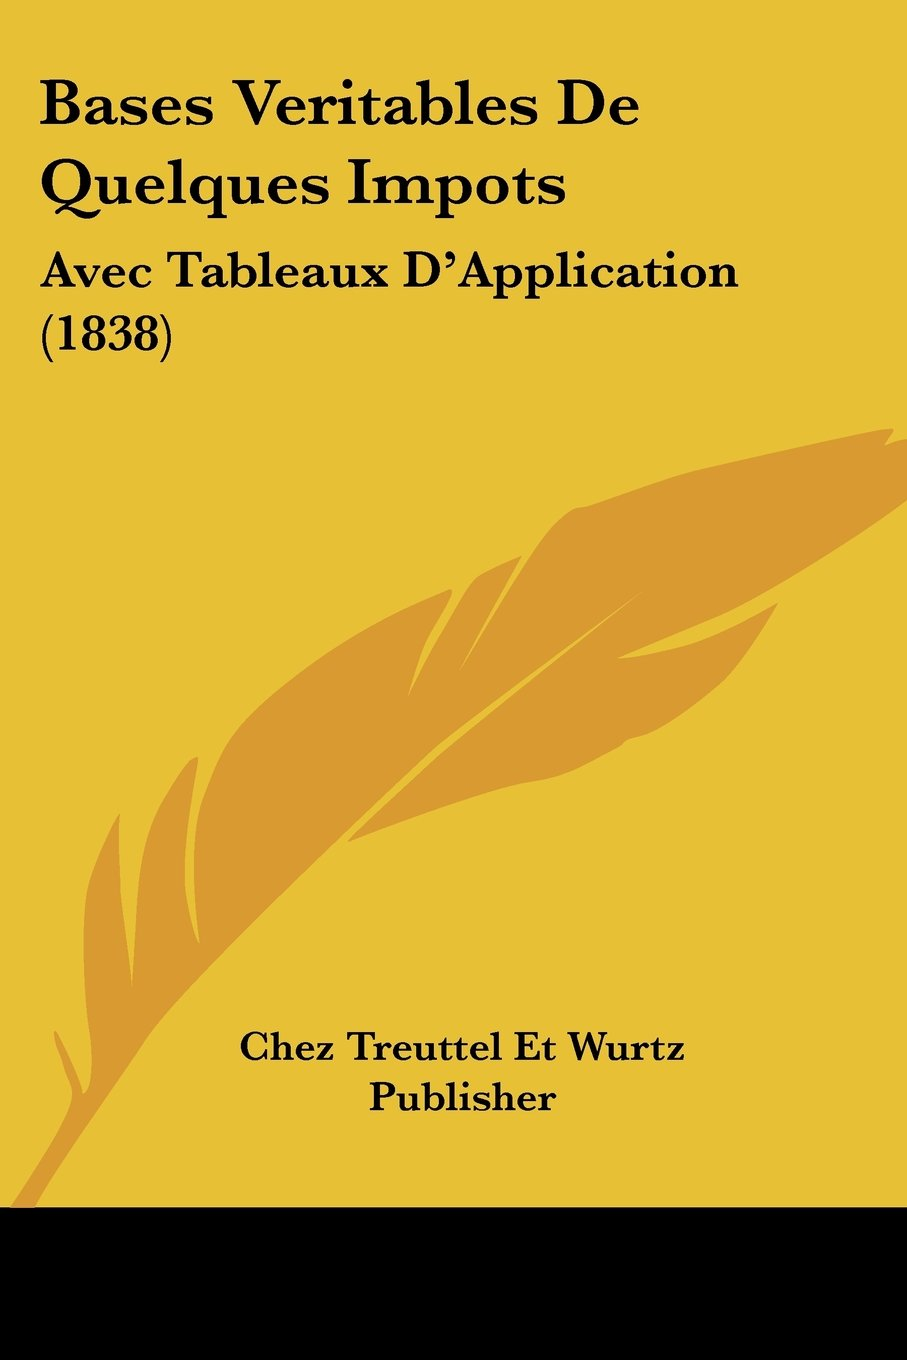 Bases Veritables De Quelques Impots: Avec Tableaux D'Application (1838) (French Edition) pdf